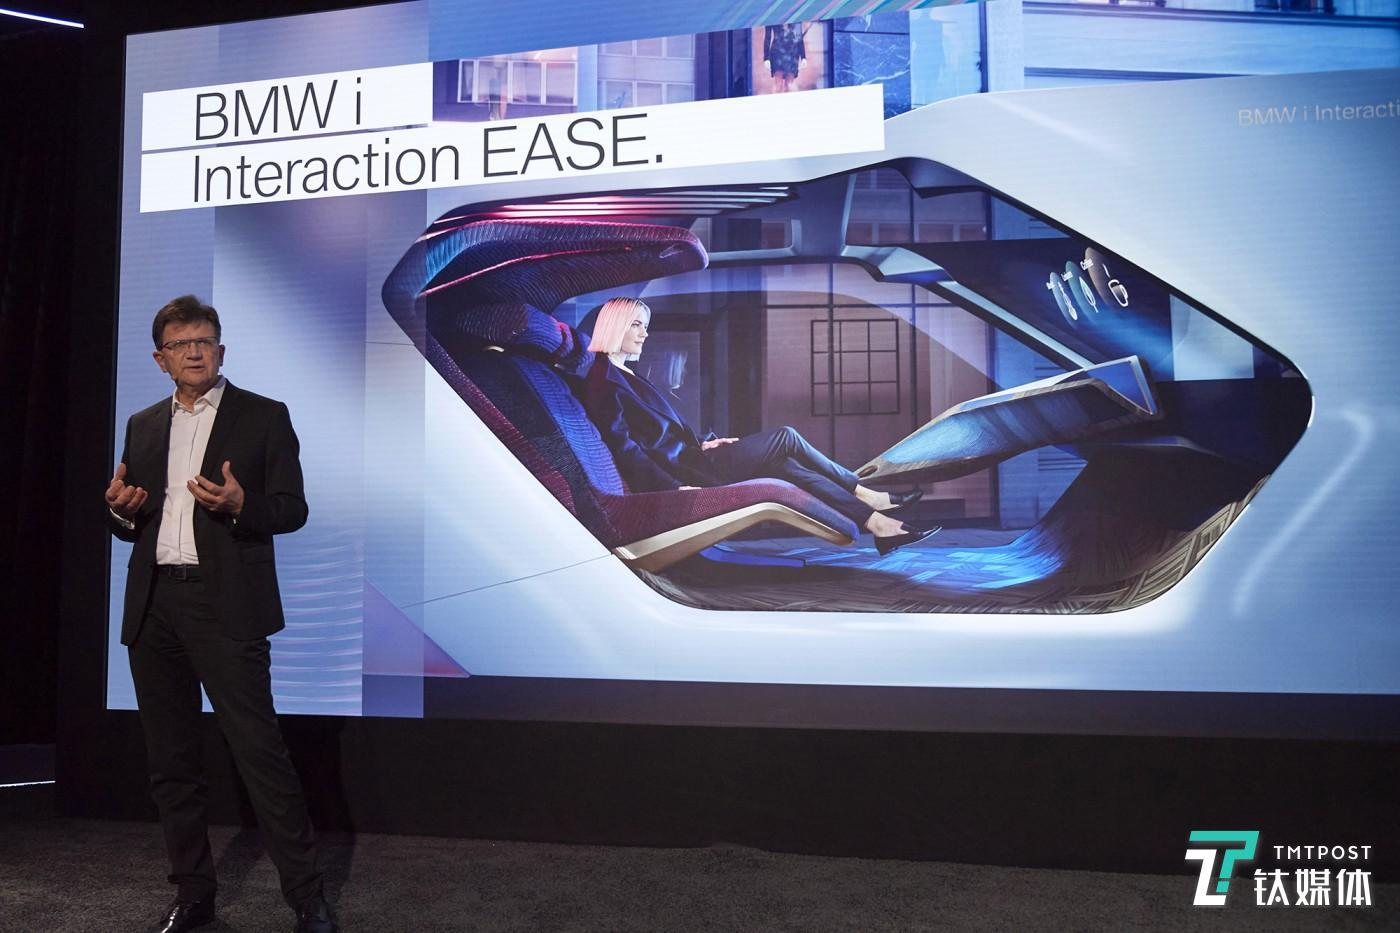 Vision BMW i Interaction EASE